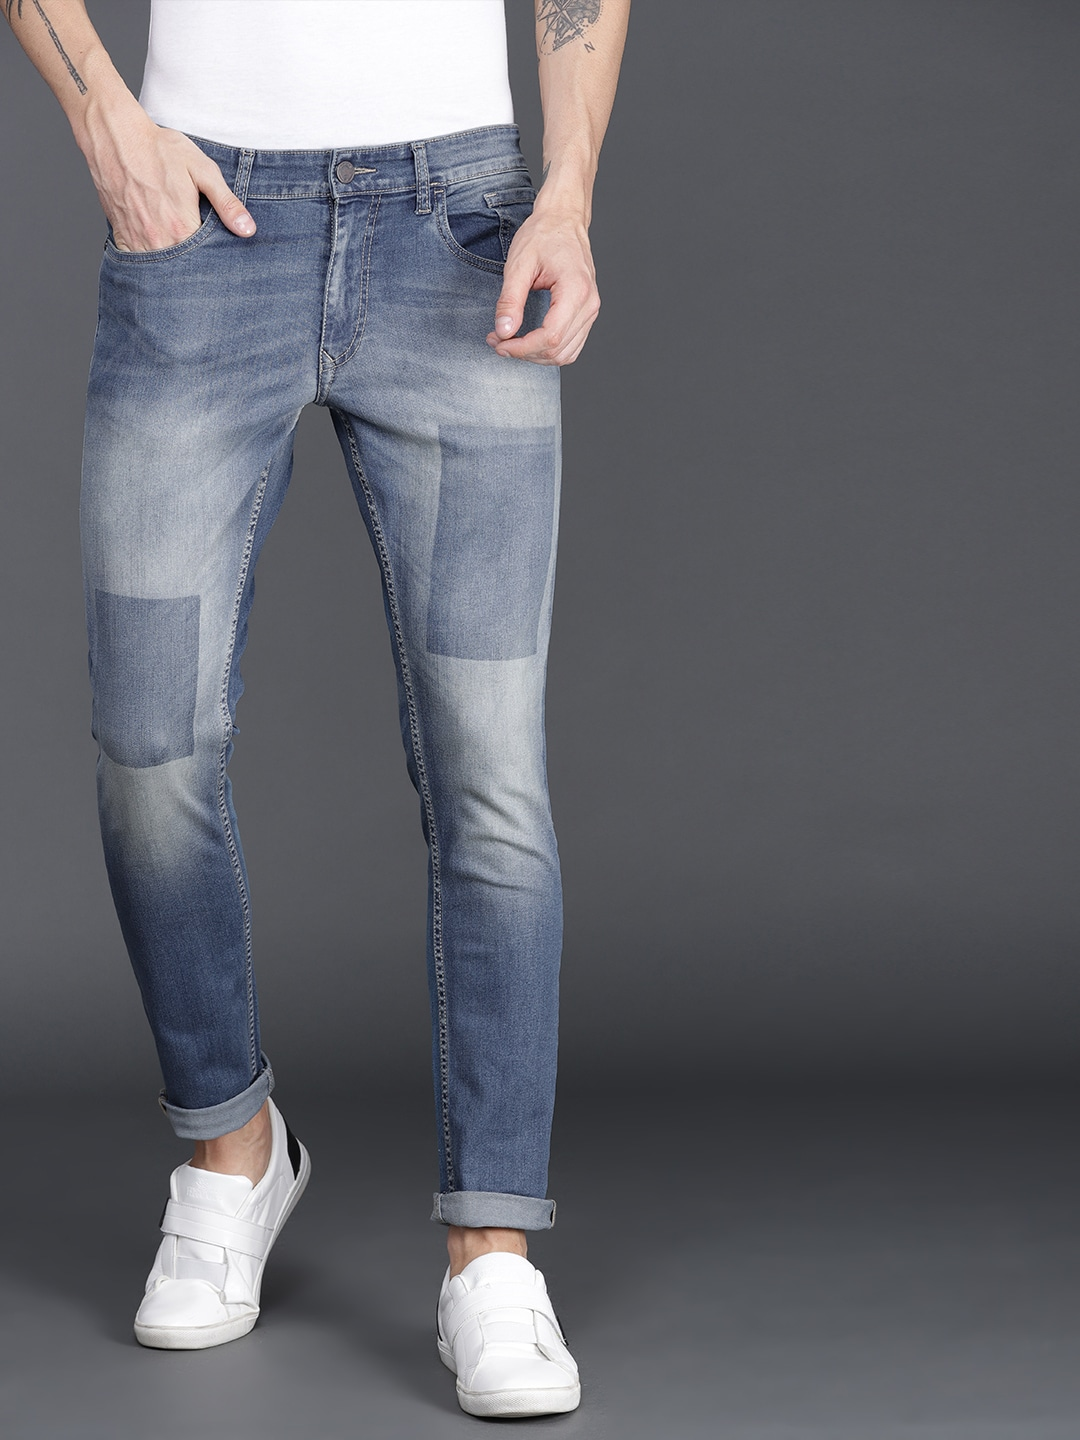 f9137c47a7689c Slim Fit Jeans - Buy Slim Jeans Online in India